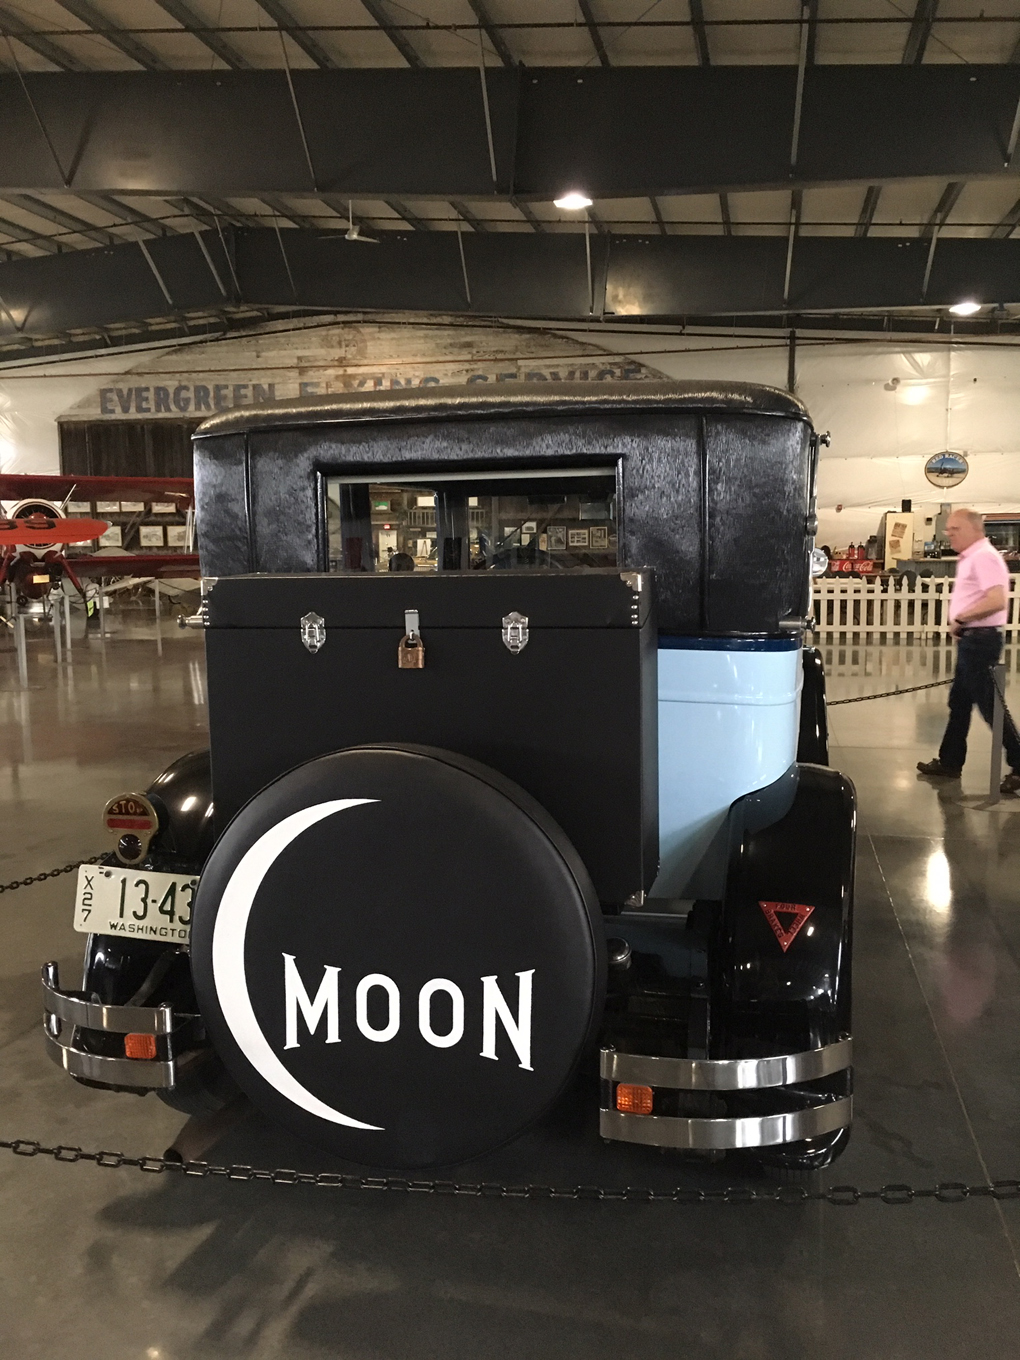 A vintage car built by the Moon company